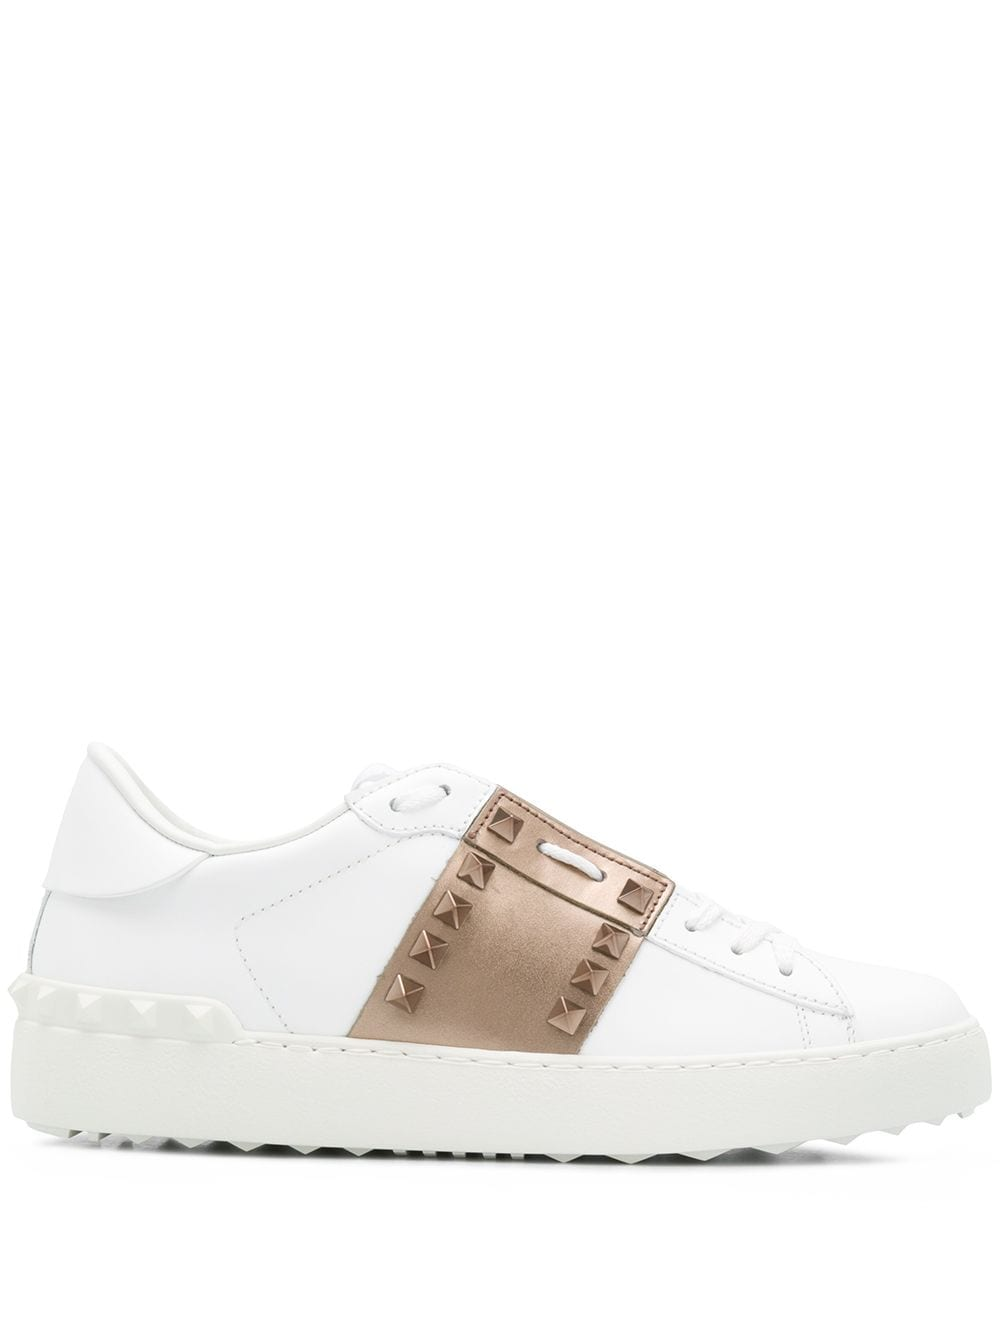 Rockstud Untitled Leather Sneakers